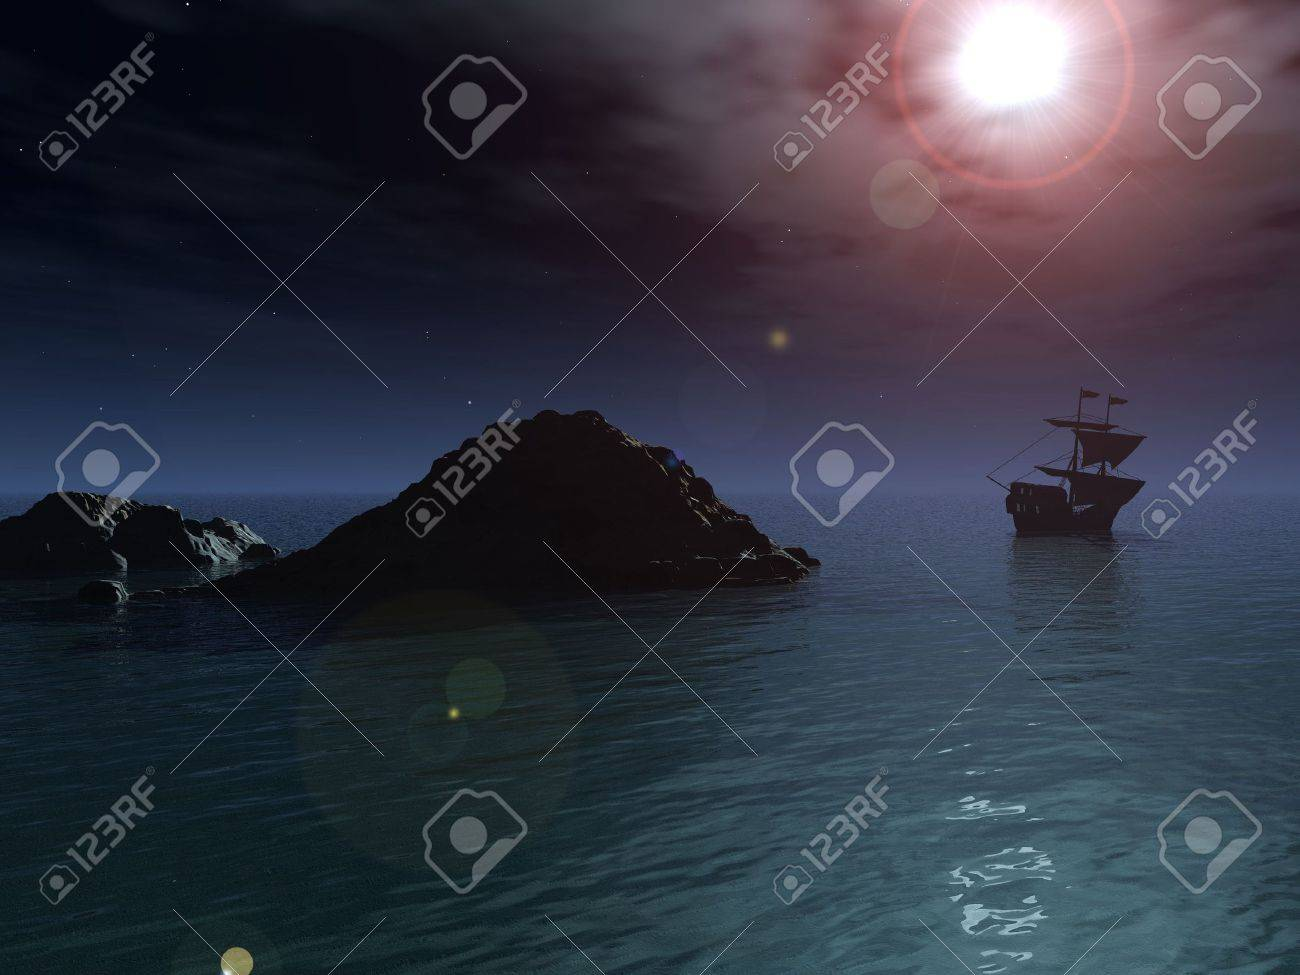 A pirate ship sails out to sea and away from a rocky outcrop, under a clear night sky and a full moon. Stock Photo - 7671111